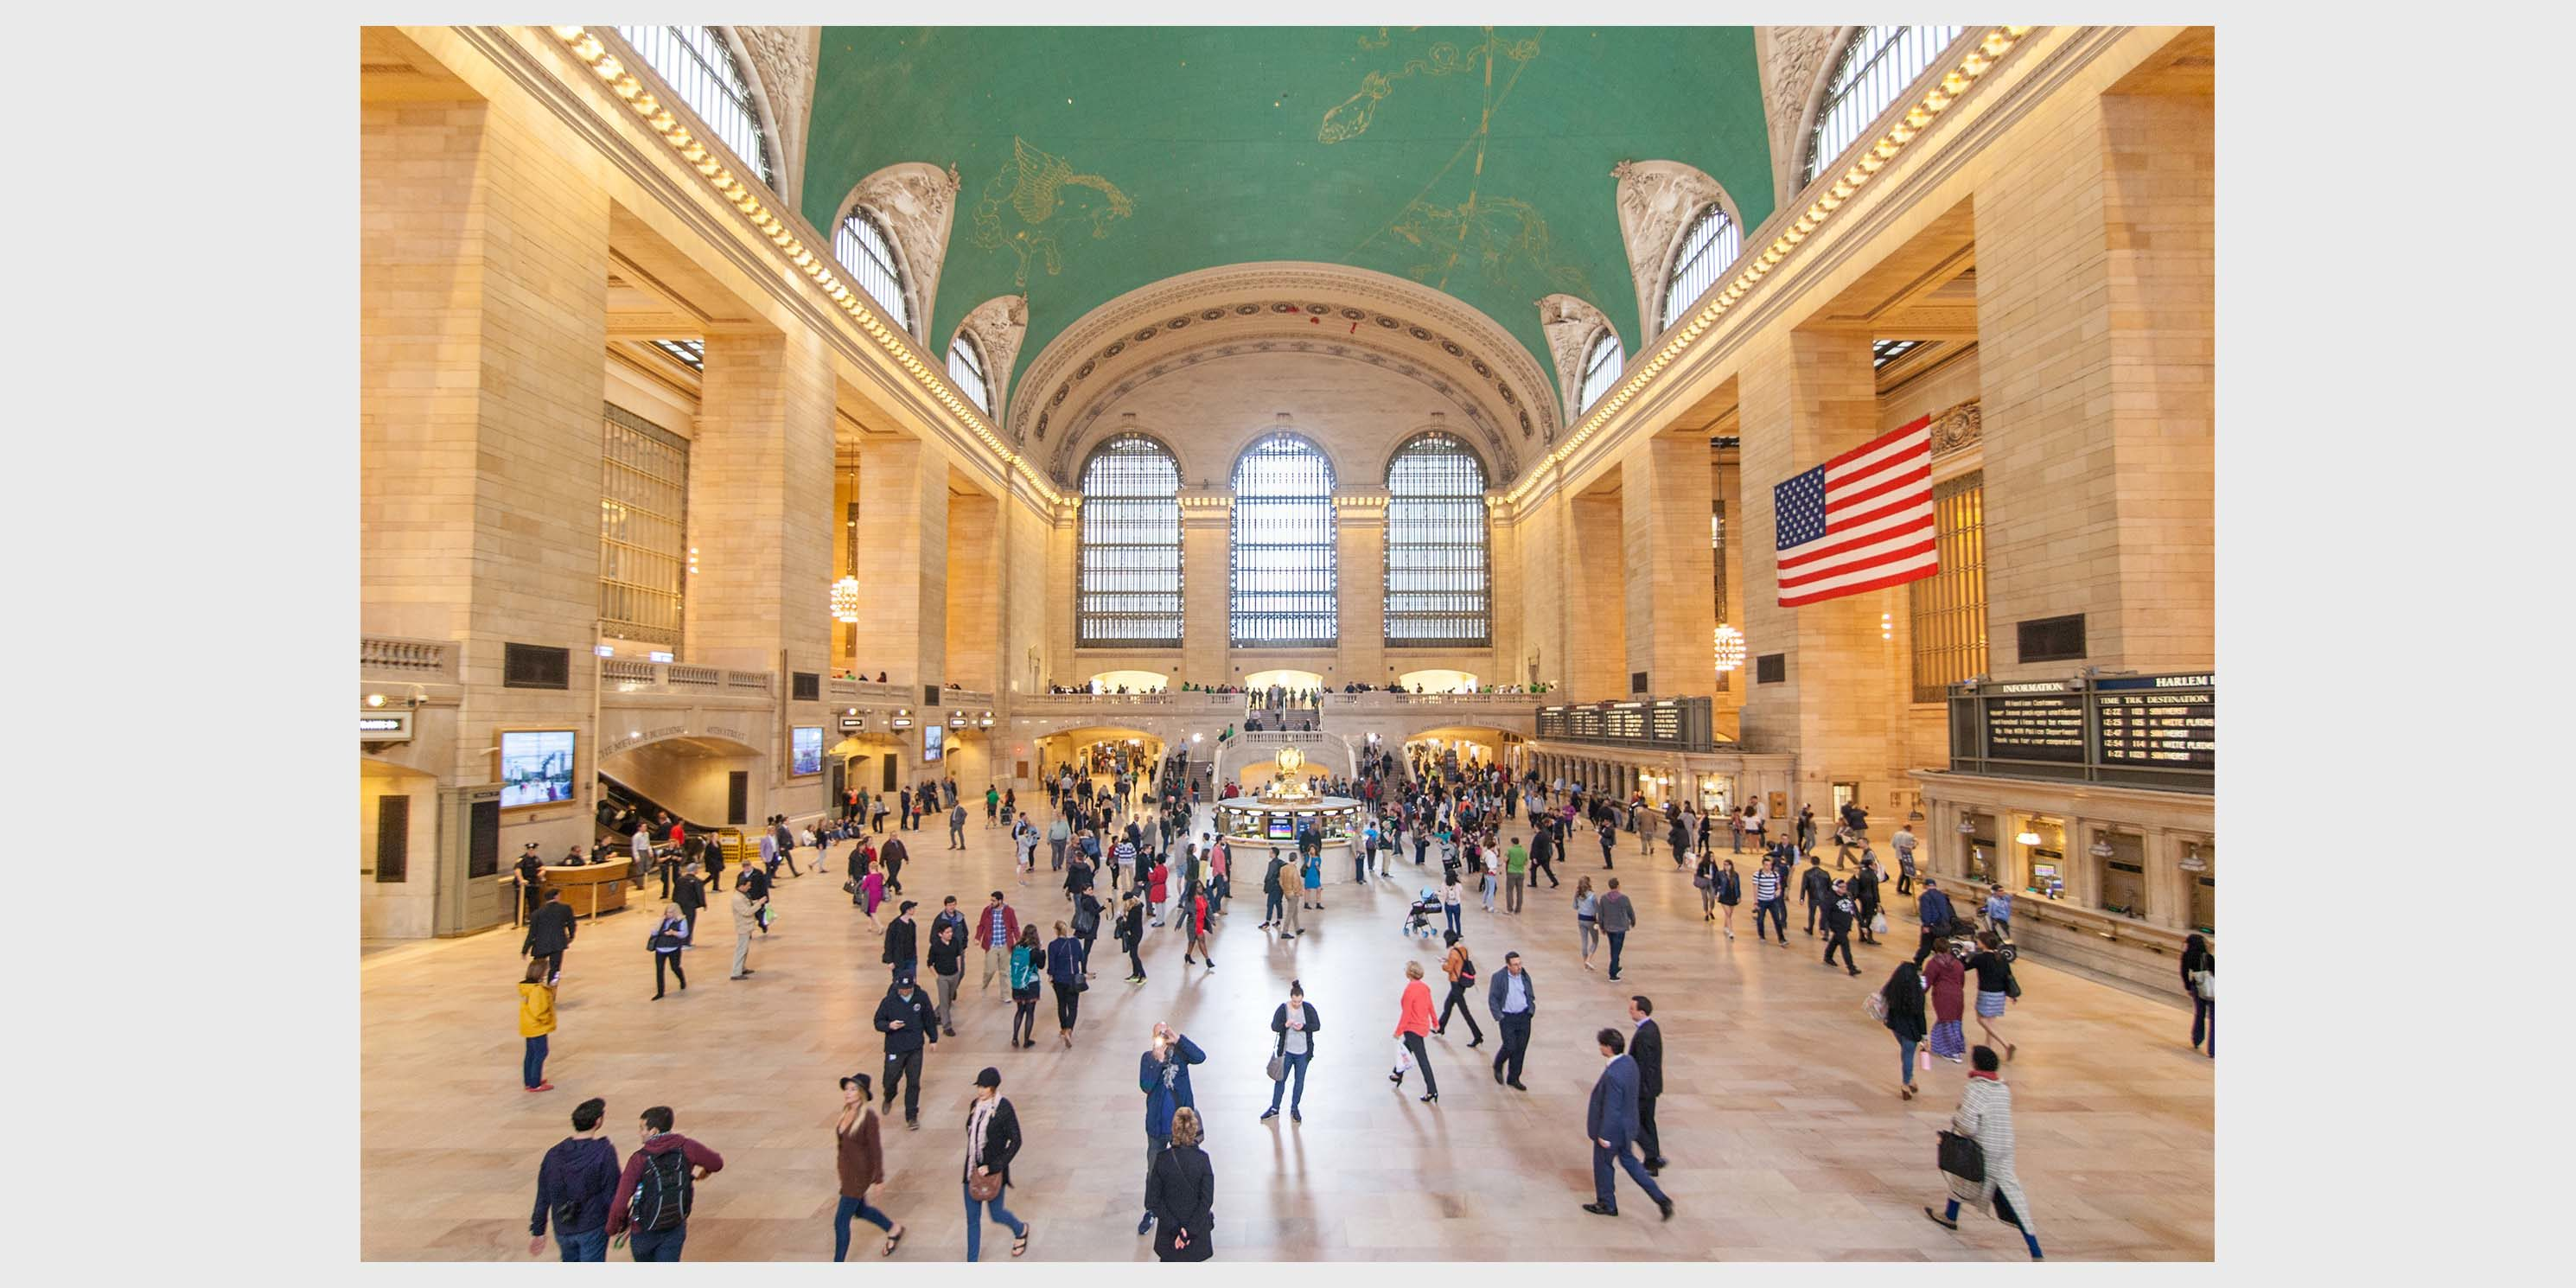 main concourse at Grand Central Terminal busy with passengers